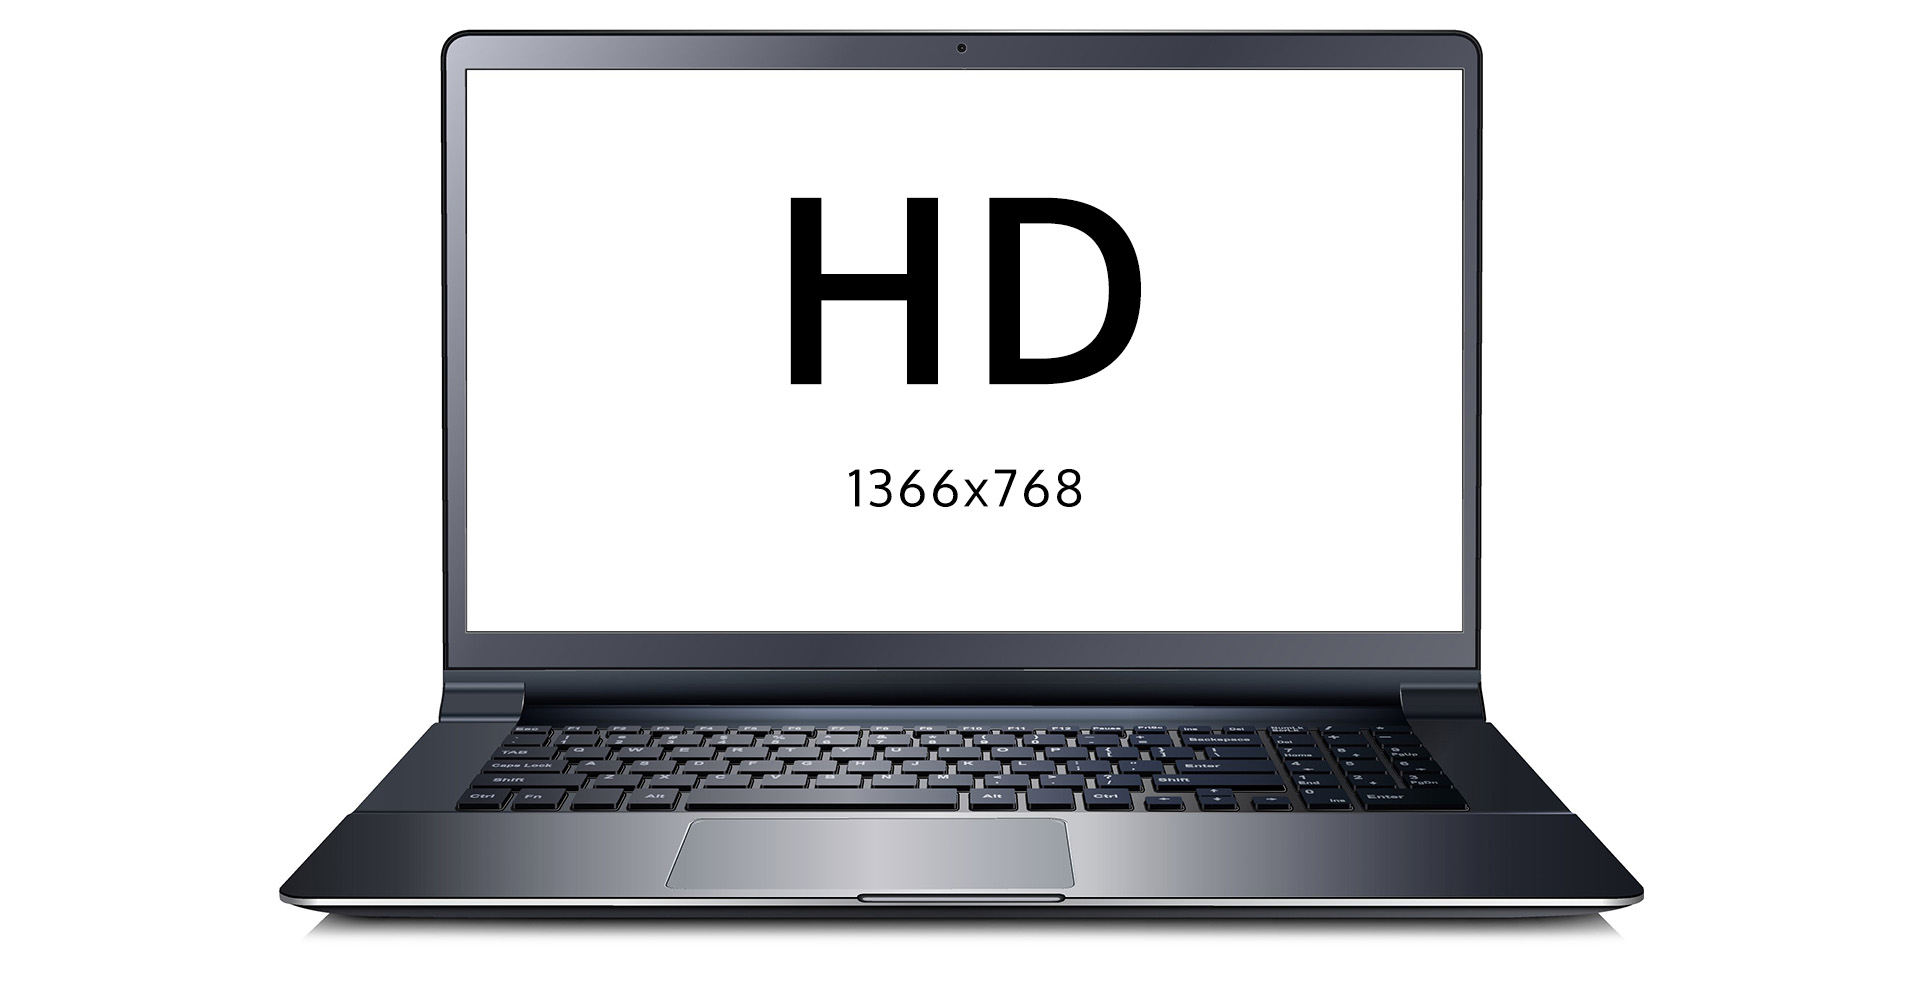 Fujitsu LifeBook A357 (S26391K425V300) 16 GB RAM/ 128 GB SSD/ 500GB HDD/ Windows 10 Pro                             HD 1366x768 resolutsioon